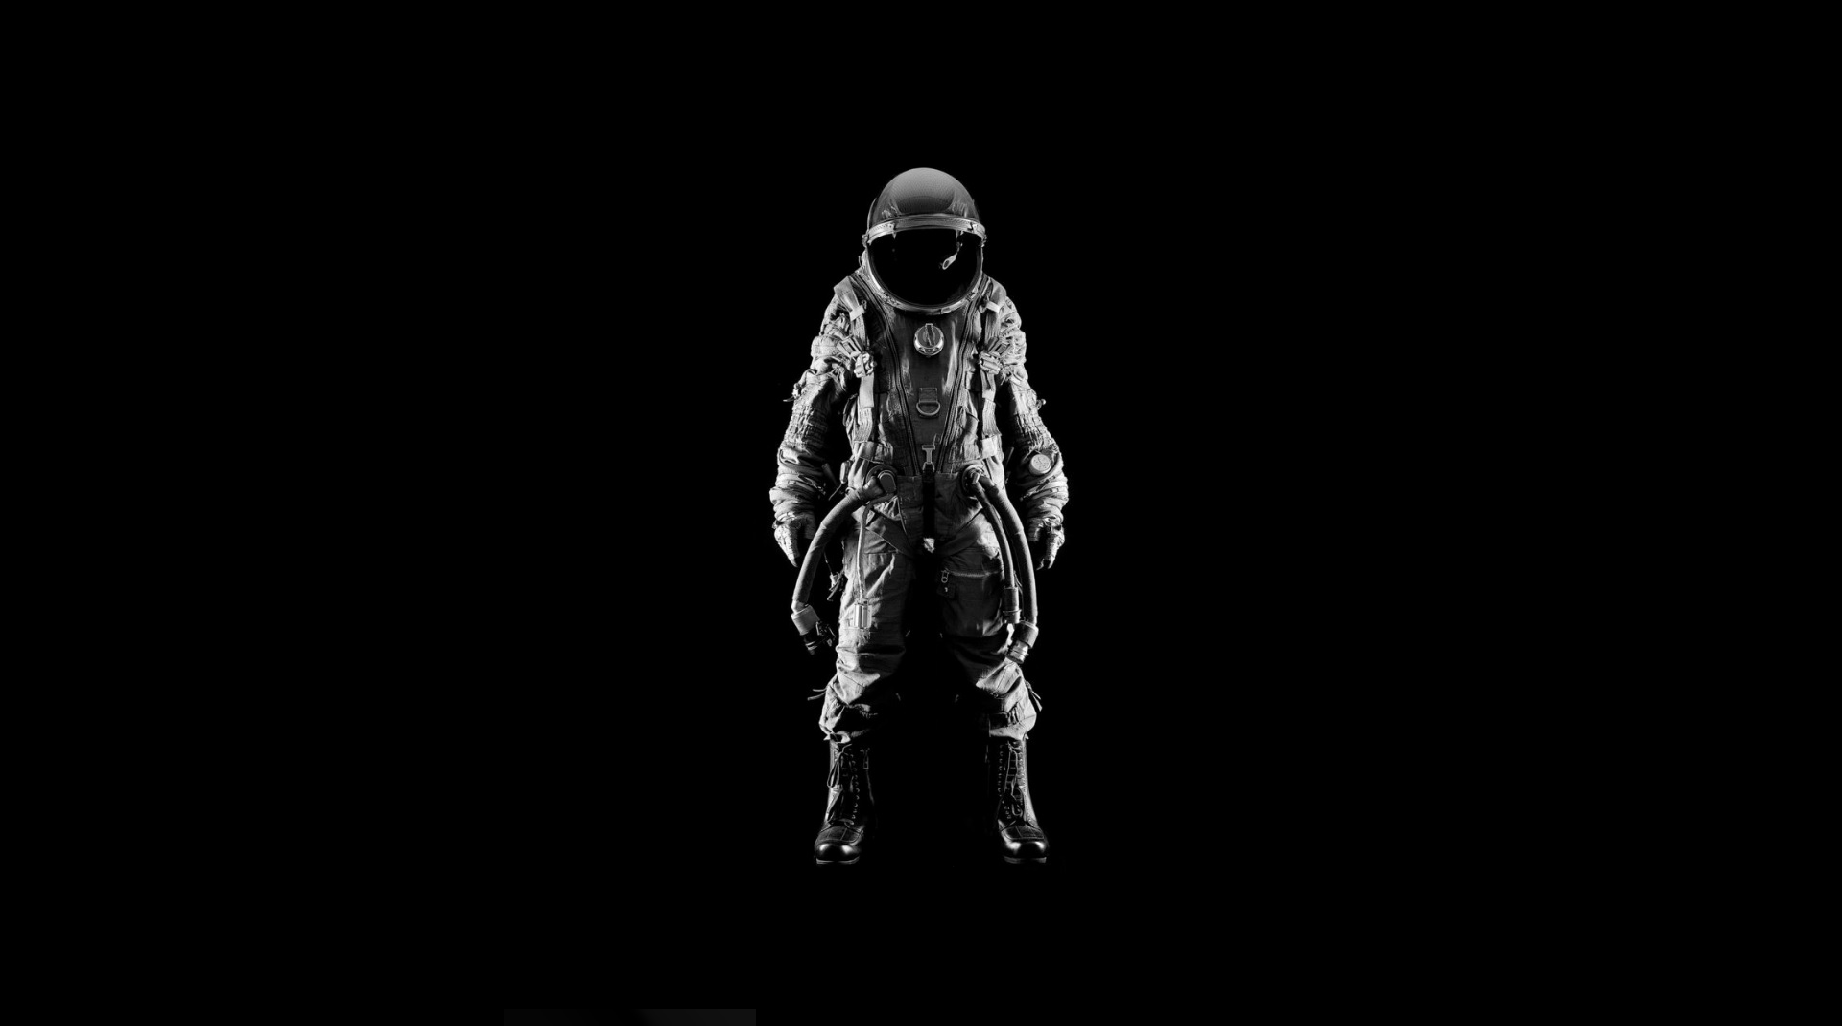 Astronaut Wallpaper by Benny Vale, B.SCB Wallpapers | Space HD Quality